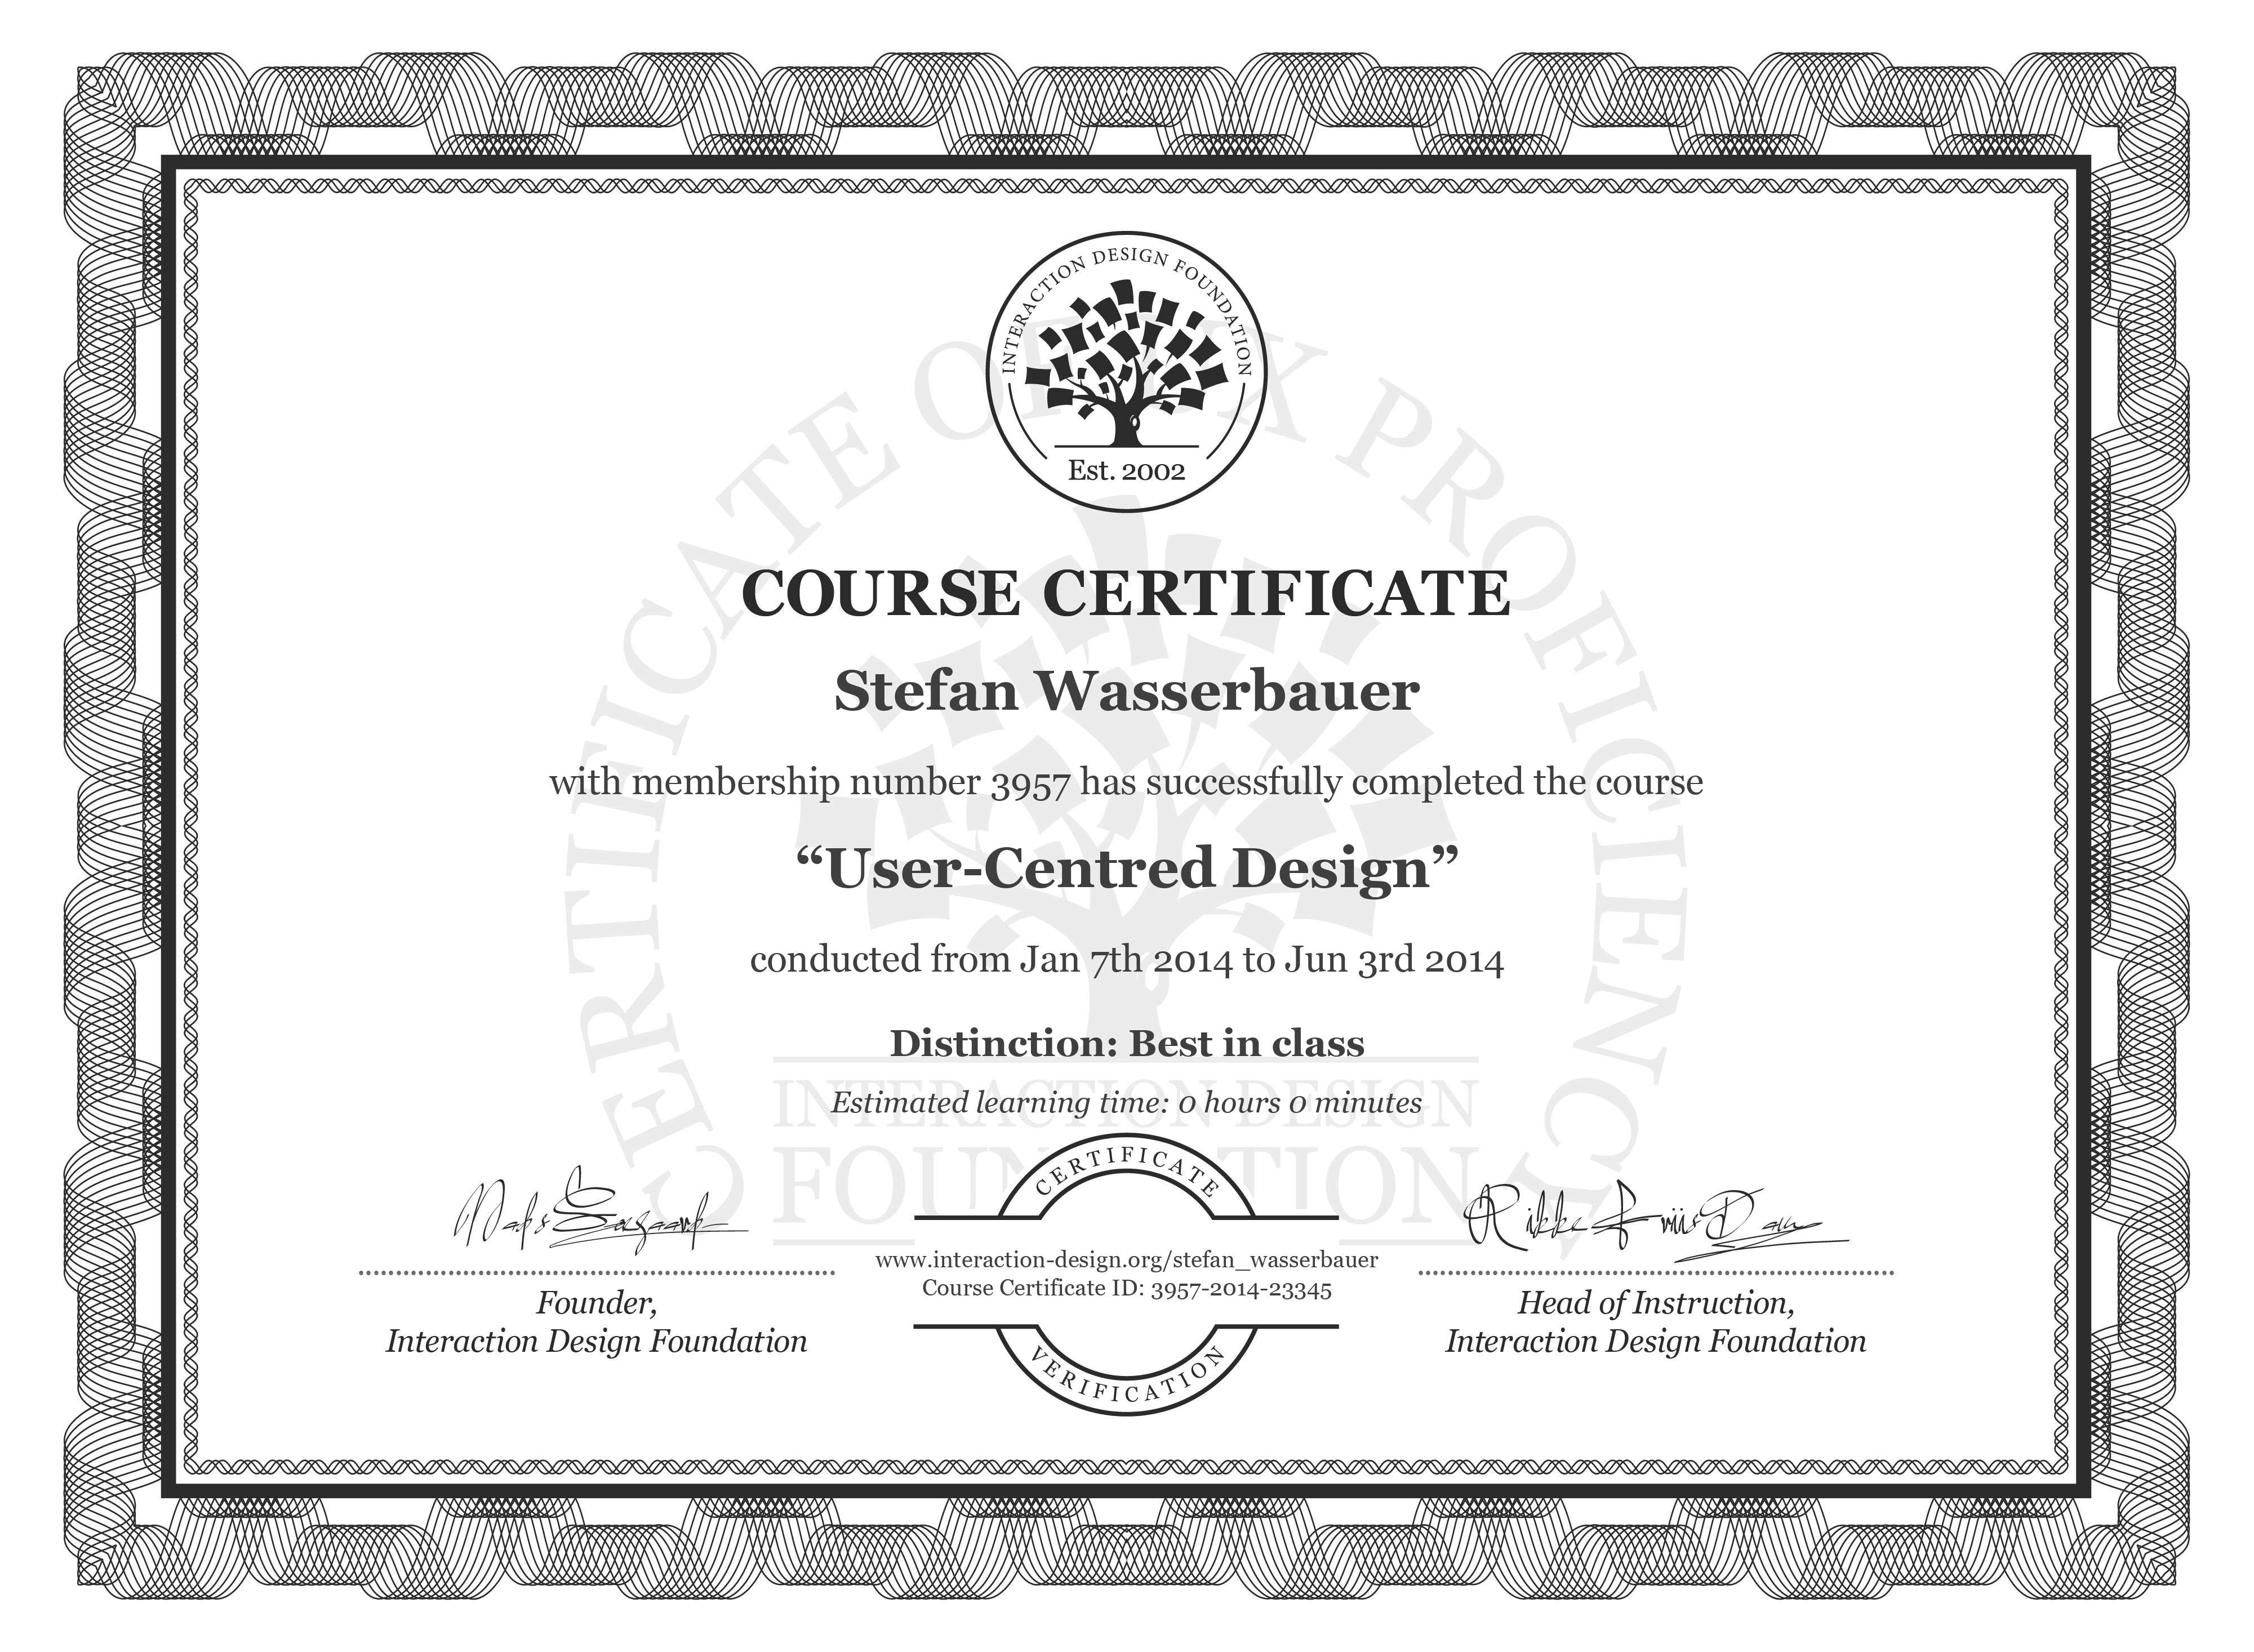 Stefan Wasserbauer's Course Certificate: User-Centred Design